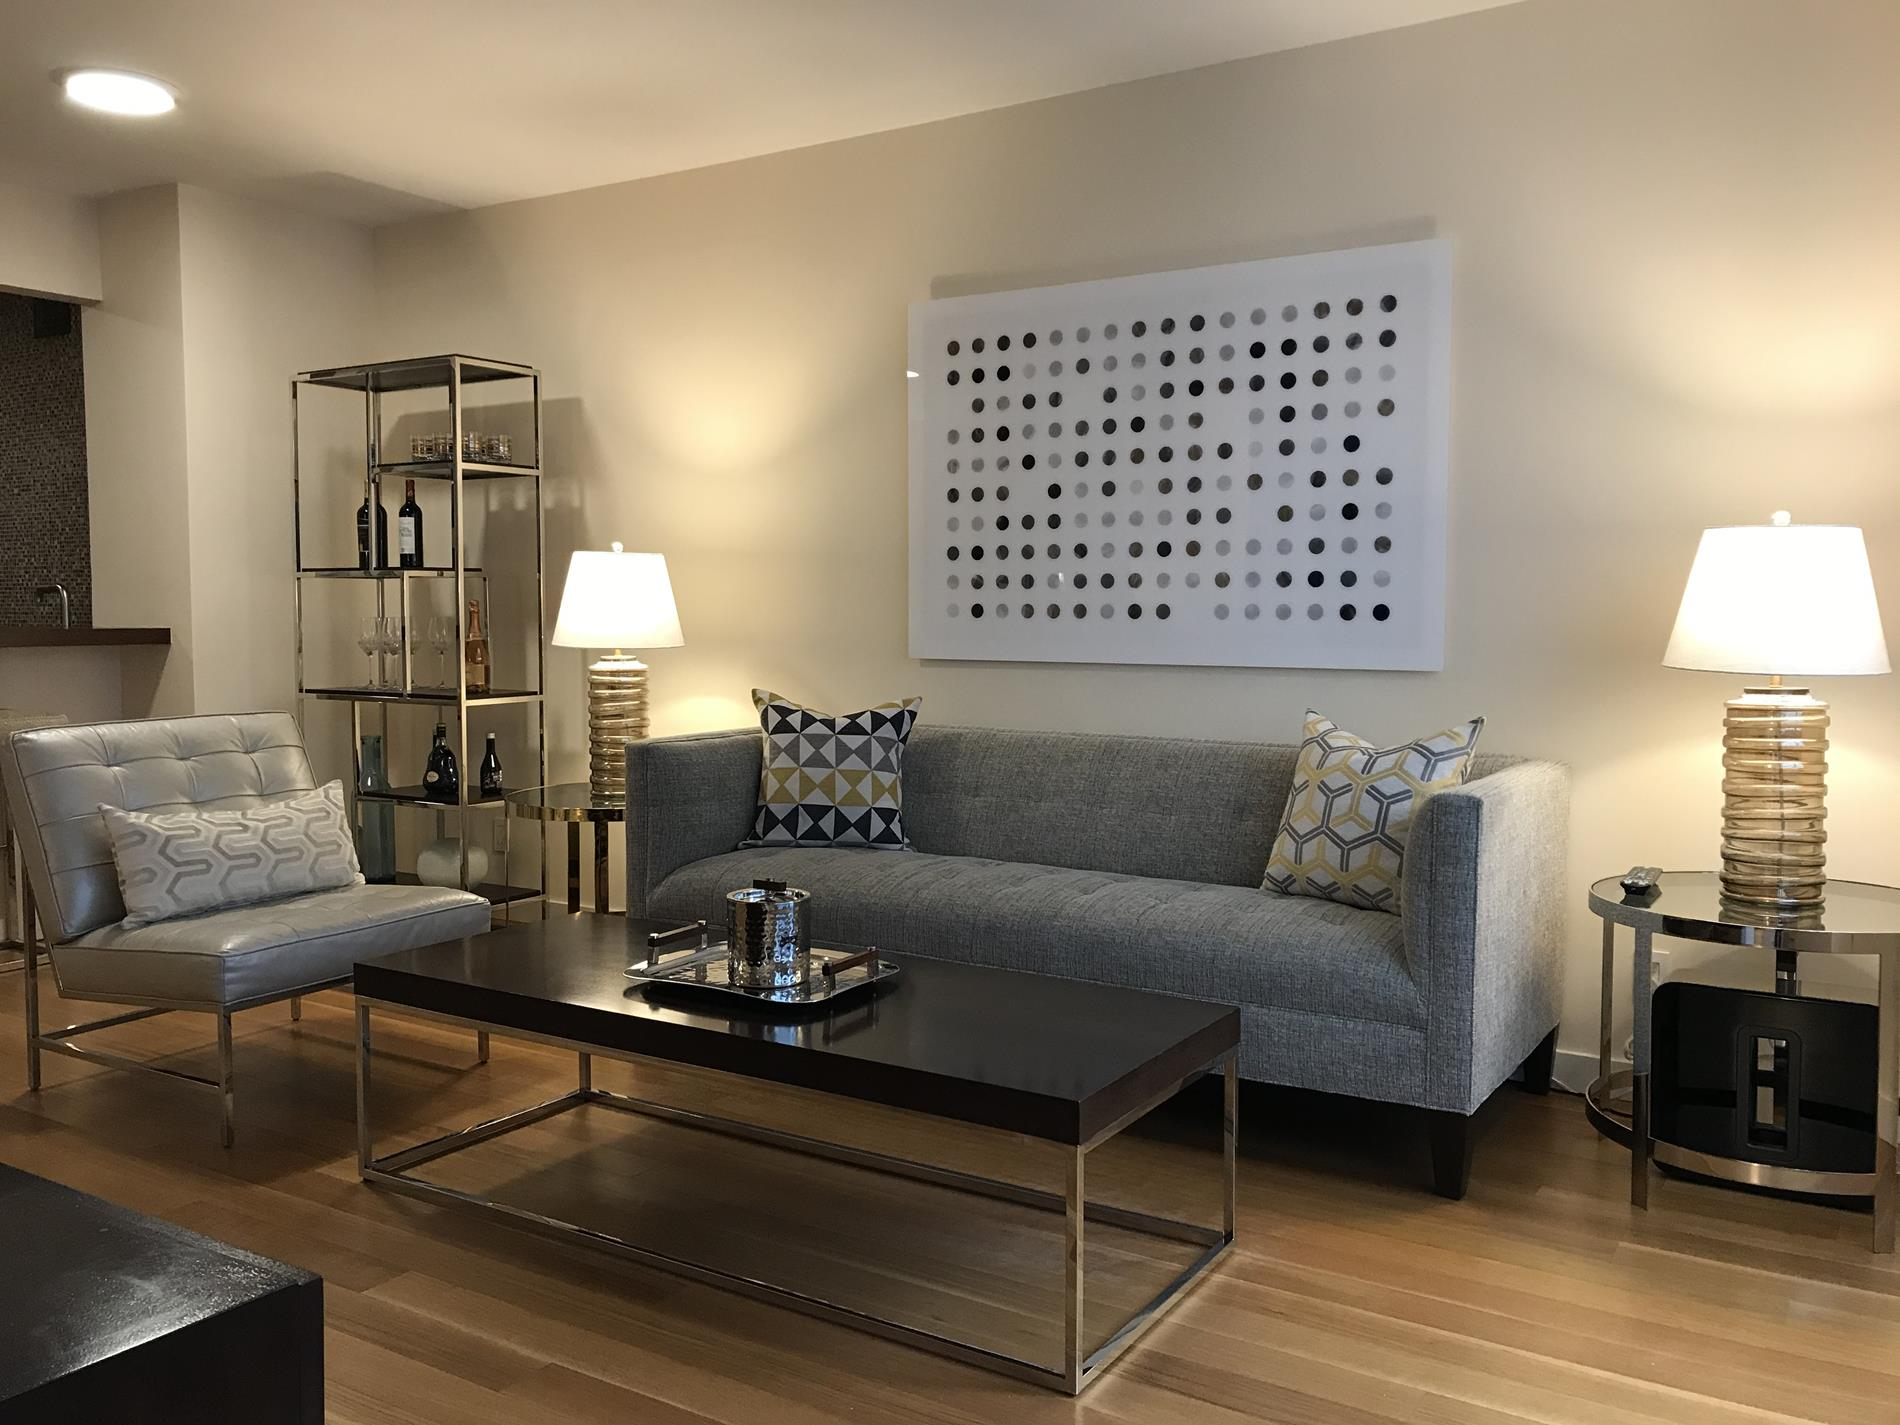 Apartment for sale at 30 West 61st Street, Apt 11-G